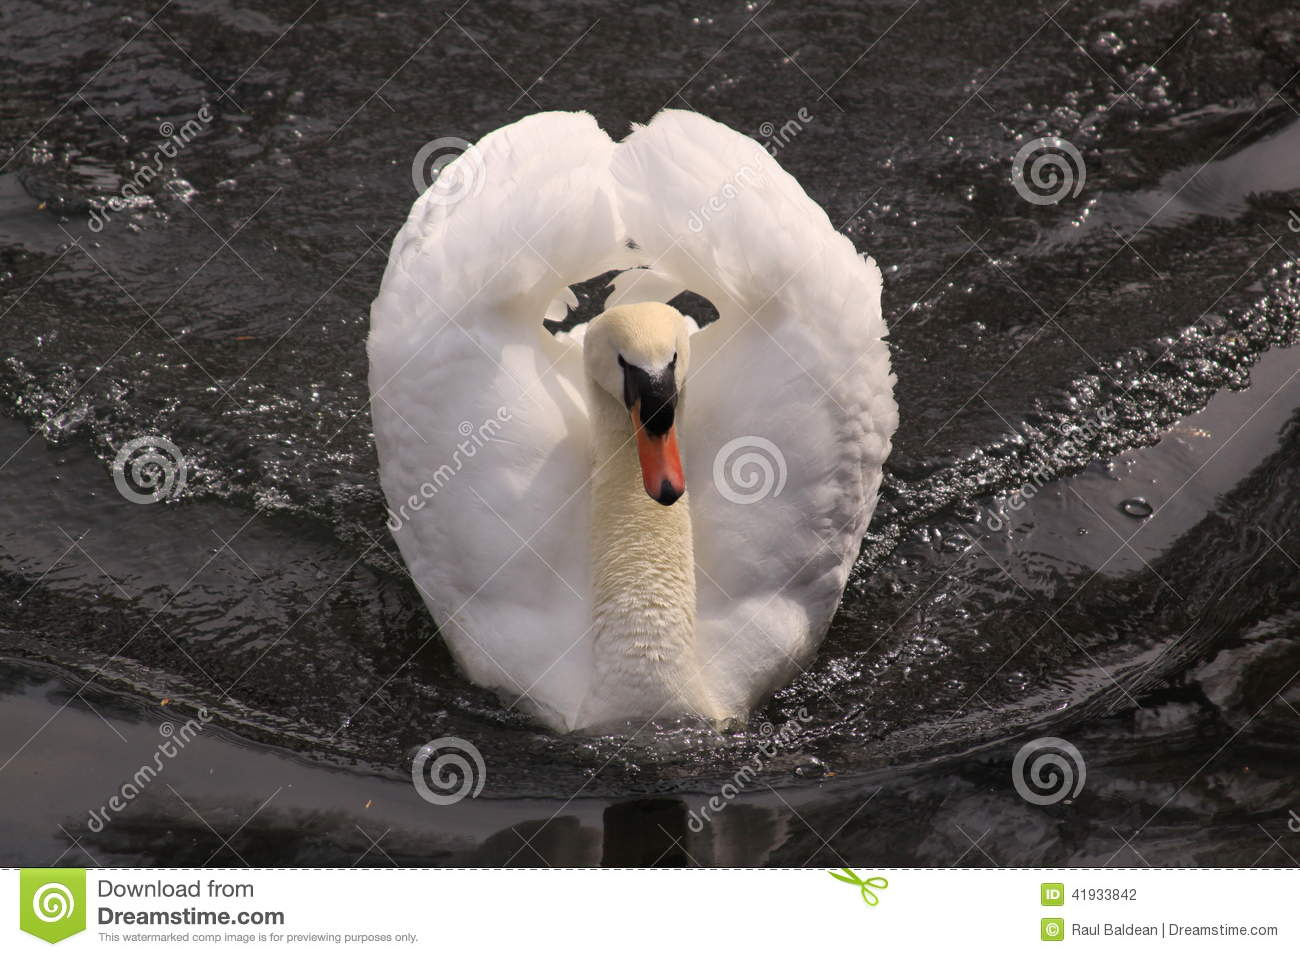 White swan on a lake in Ireland